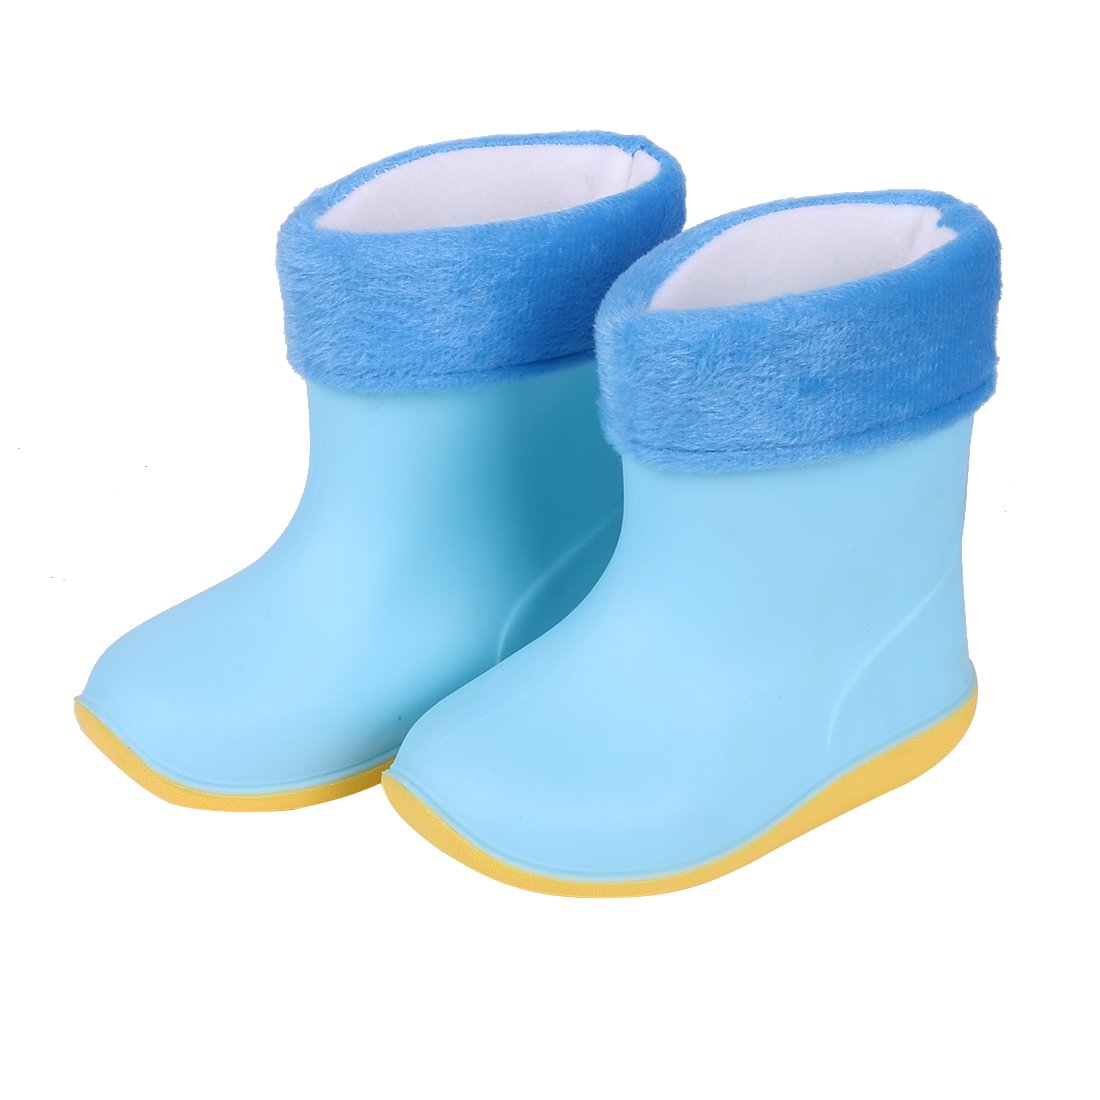 Asgard Cute Rain Boots for Kids Waterproof Candy Color Ankel Rubber Boots, with Warm Cosy Soft Socks B16 by Asgard (Image #6)